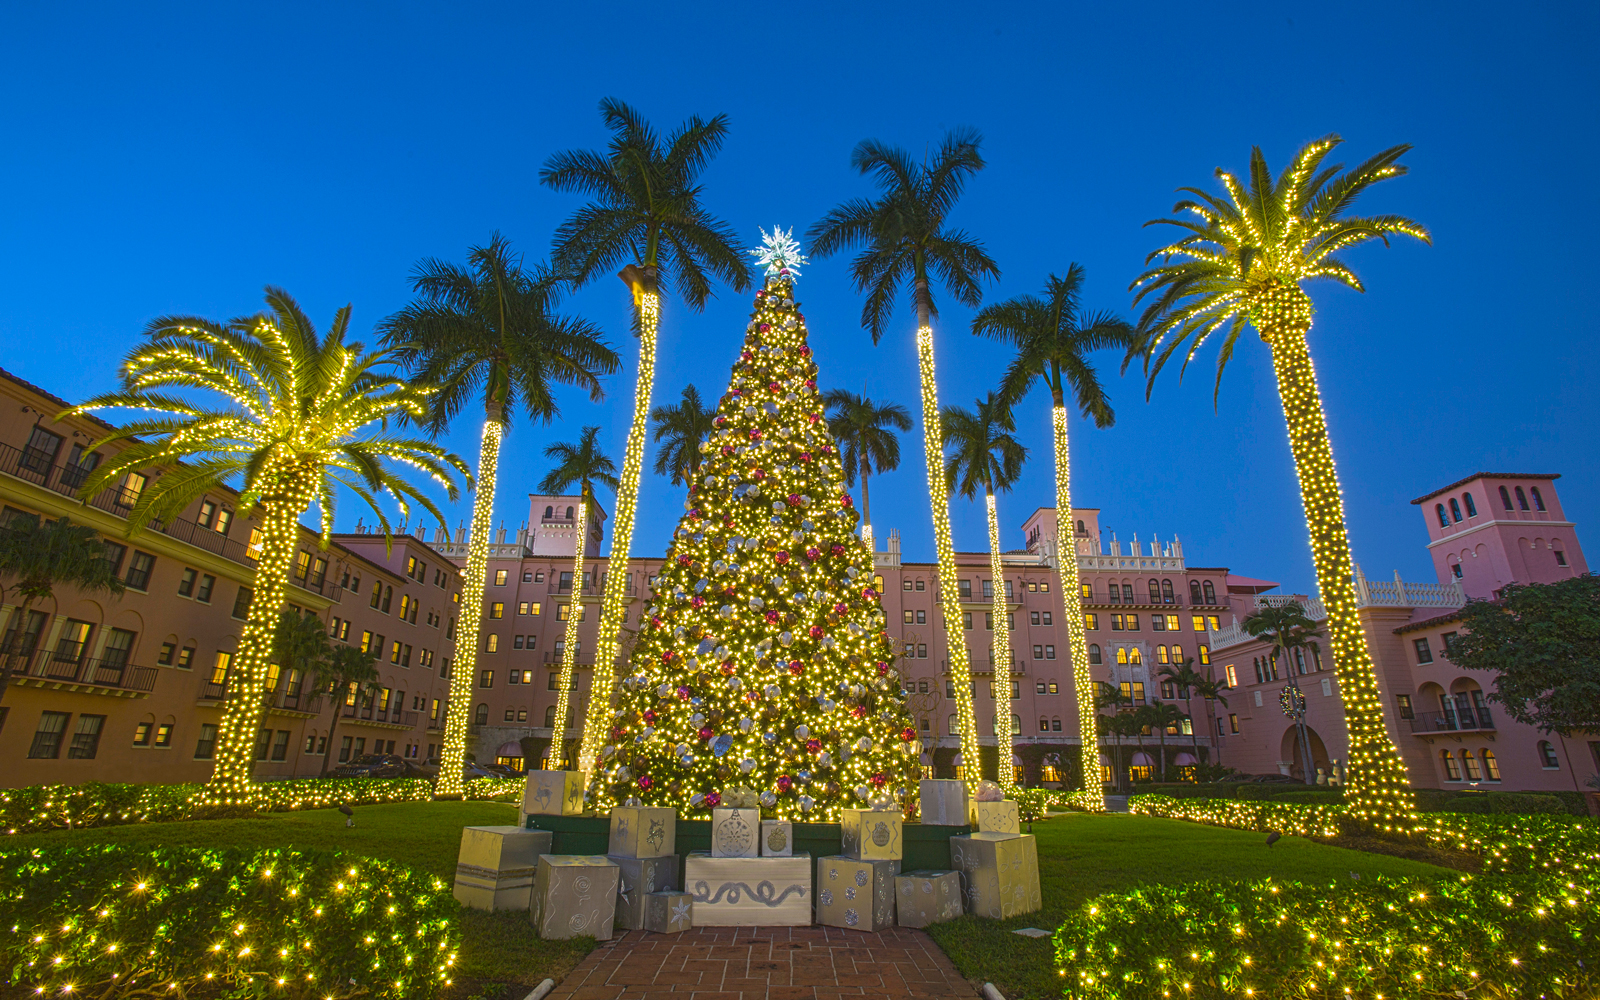 Boca Raton Resort & Club Christmas